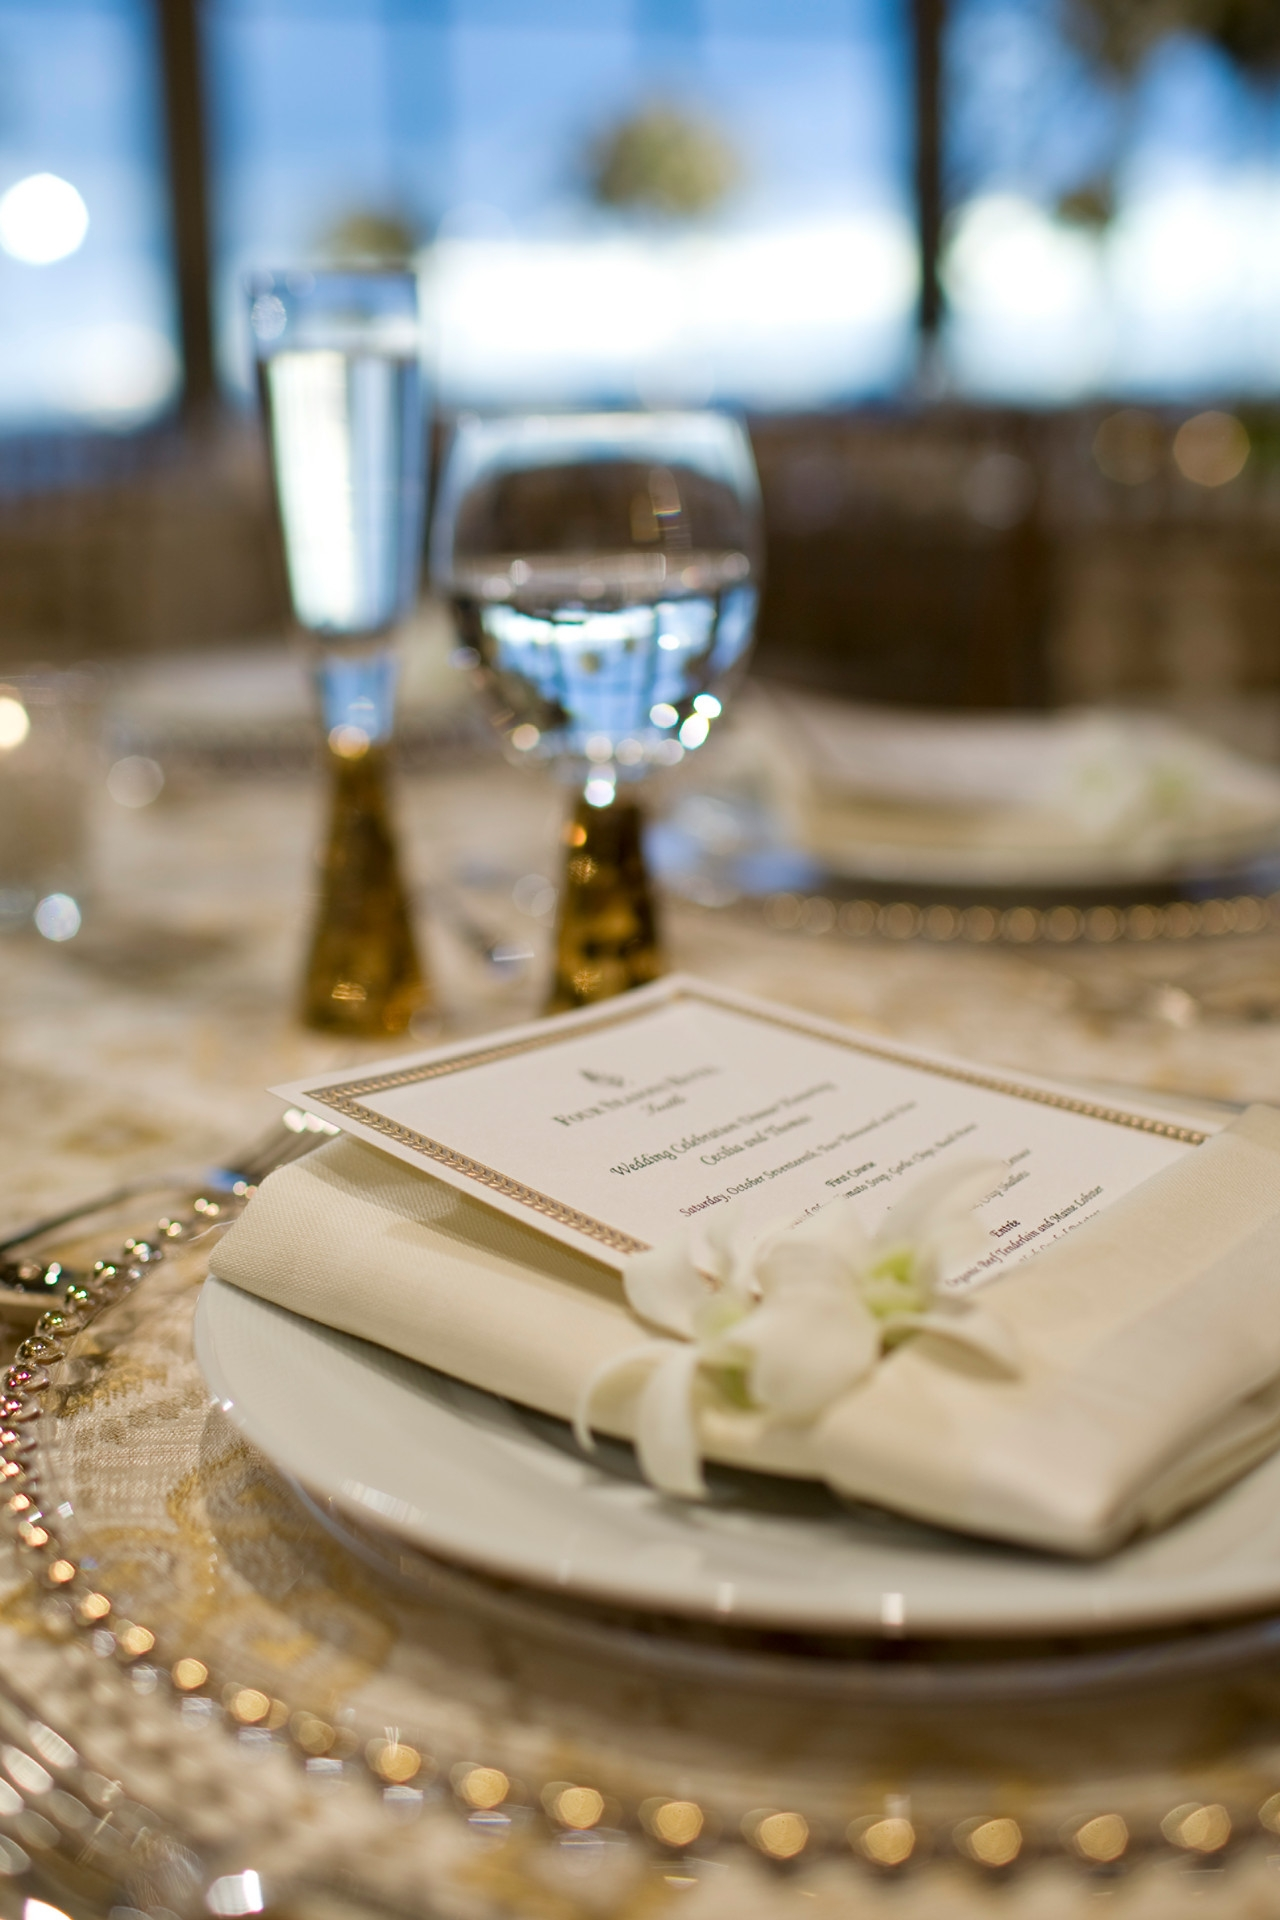 Ballroom_Table close-up.JPG